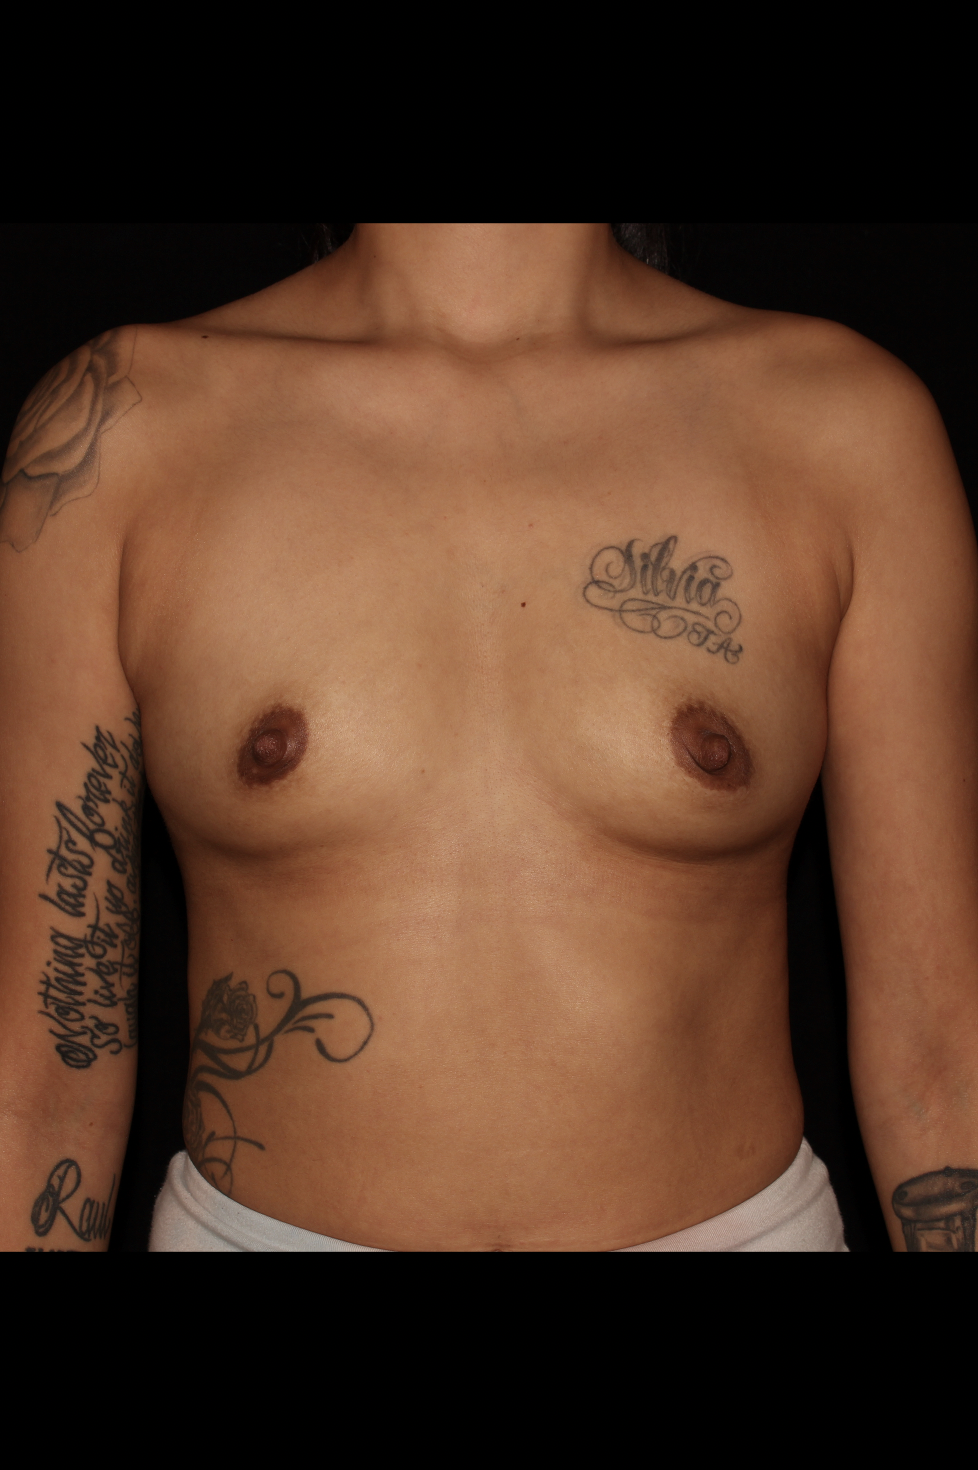 Before Breast Augmentation - Rapid Recovery Breast Augmentation